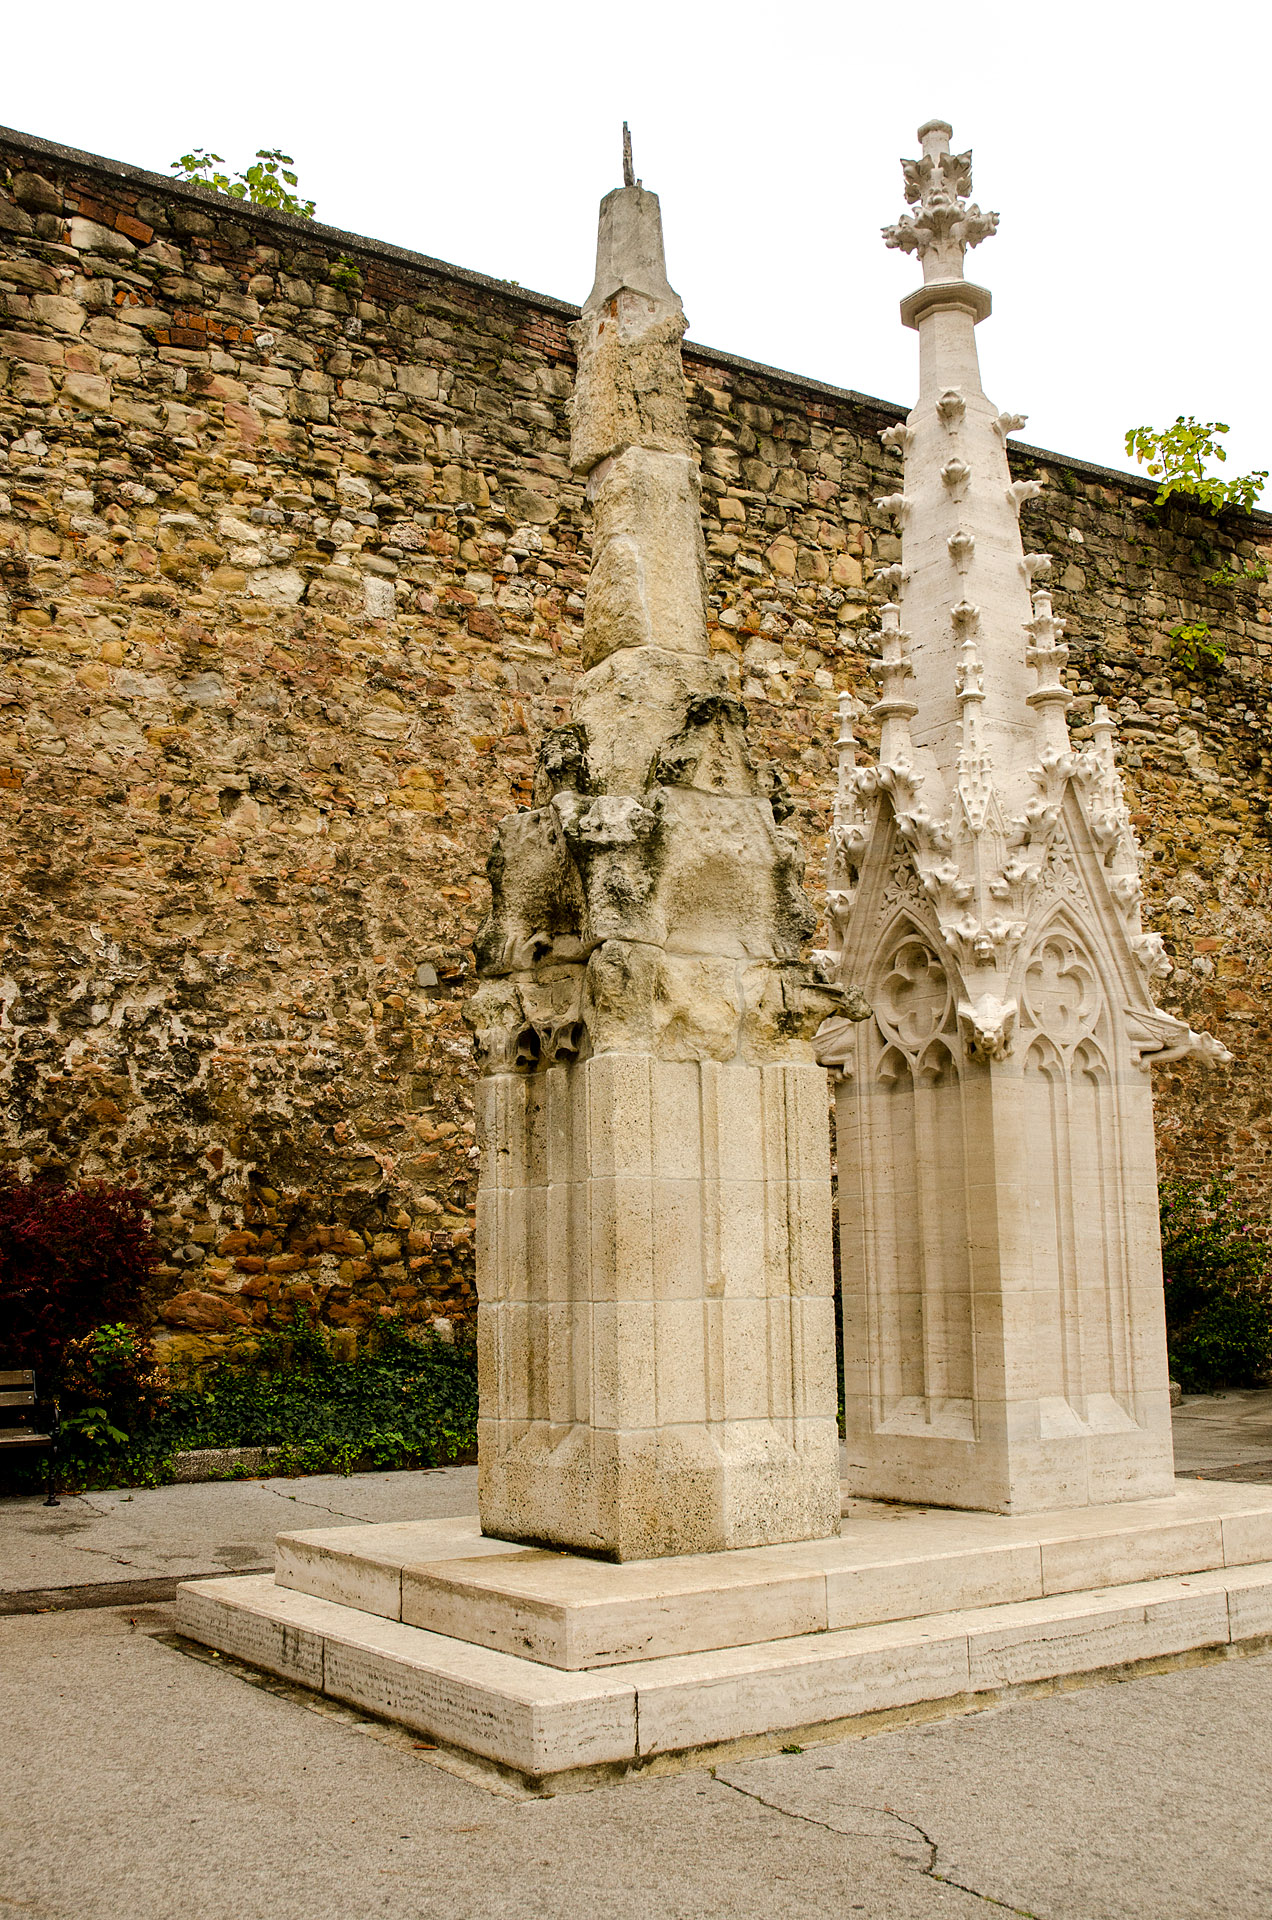 Cathedral spires (unrestored and restored)